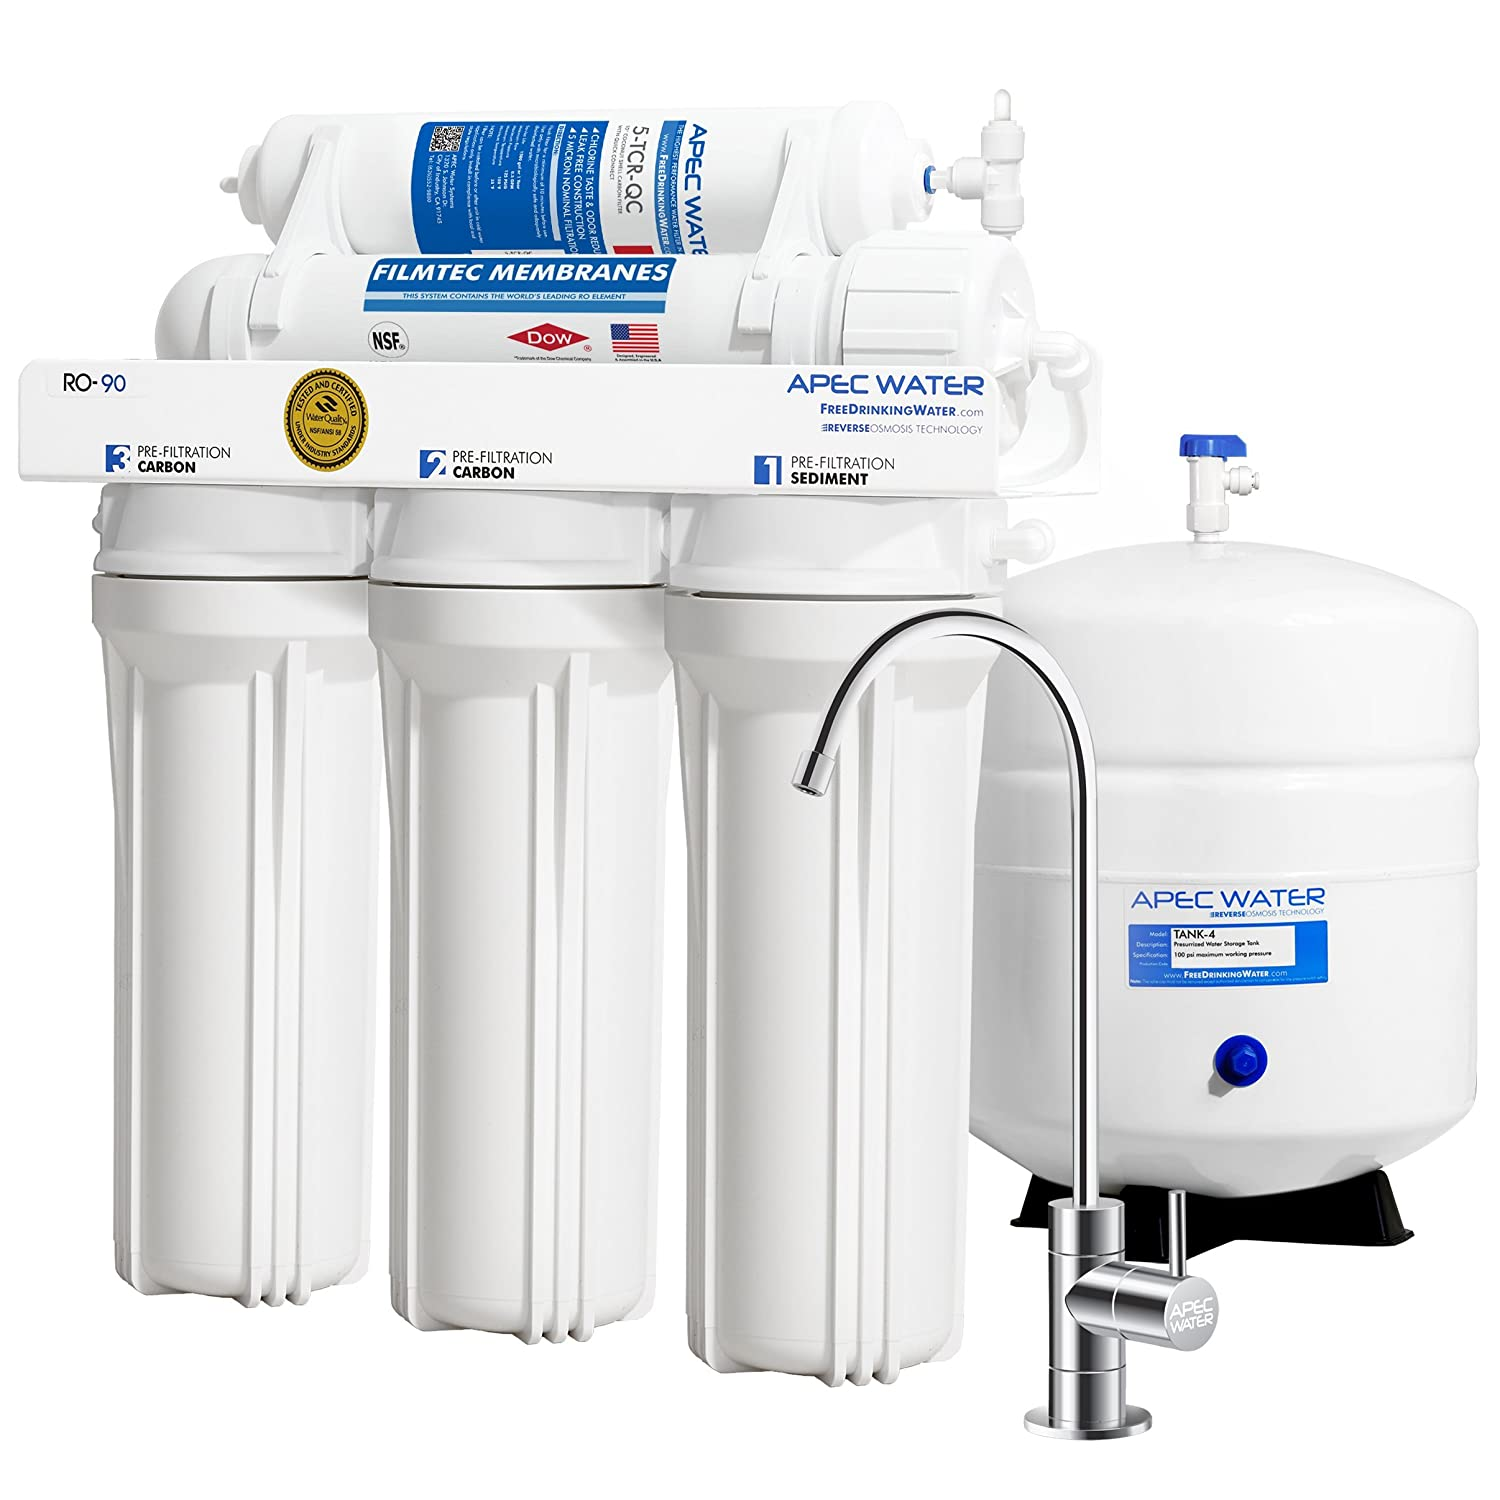 APEC Water Systems Reverse Osmosis Drinking Water Filter System,